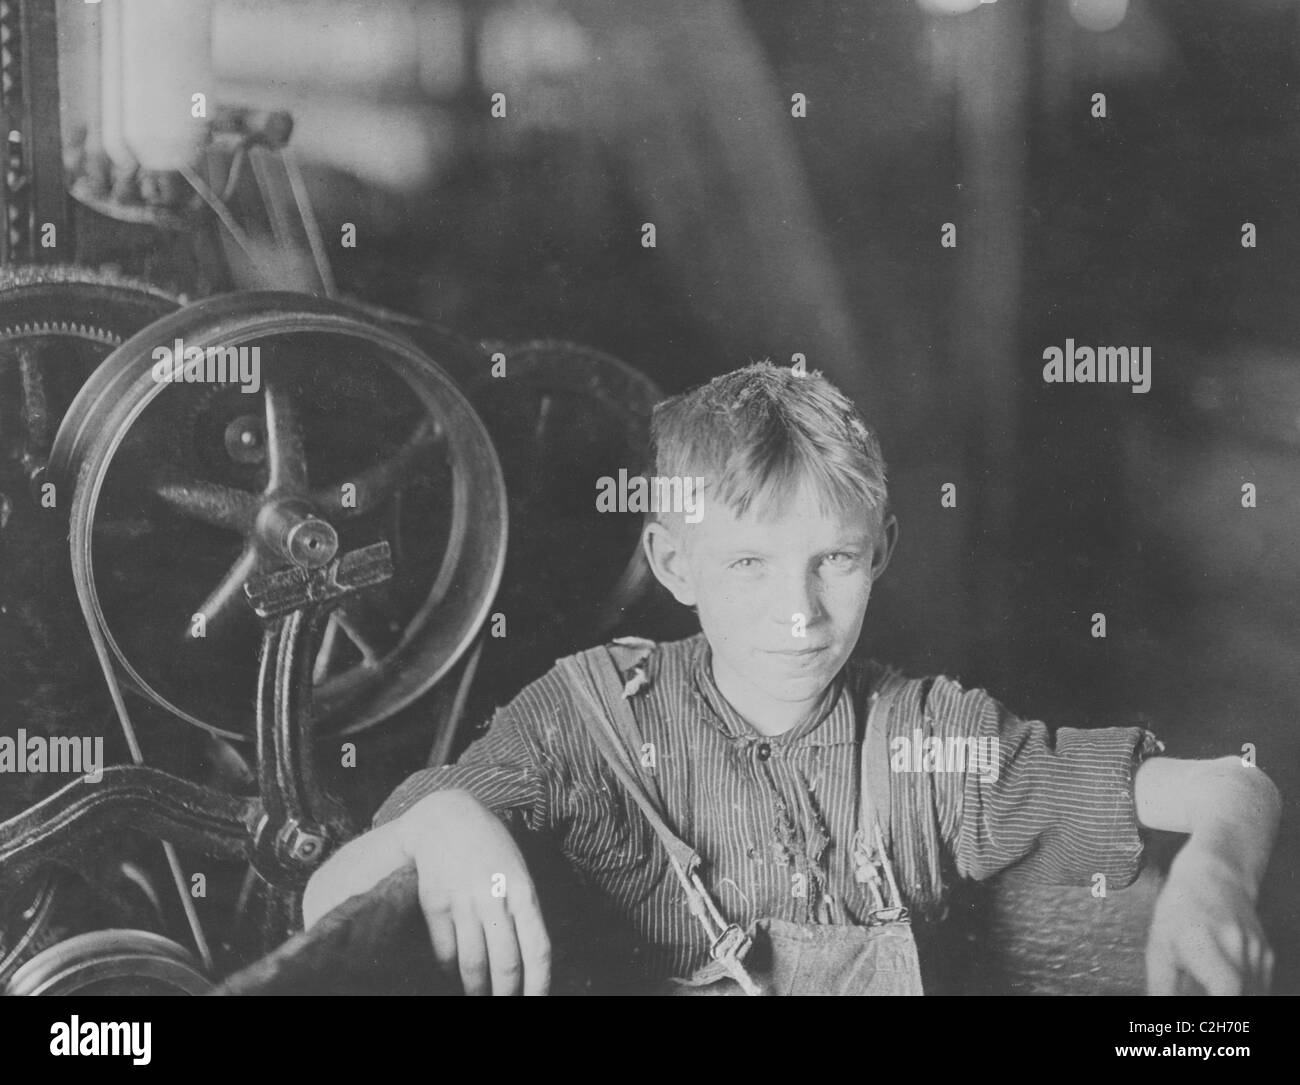 A young Polish spinner in the Quidwick Co. Mill. Anthony, R. I - Stock Image